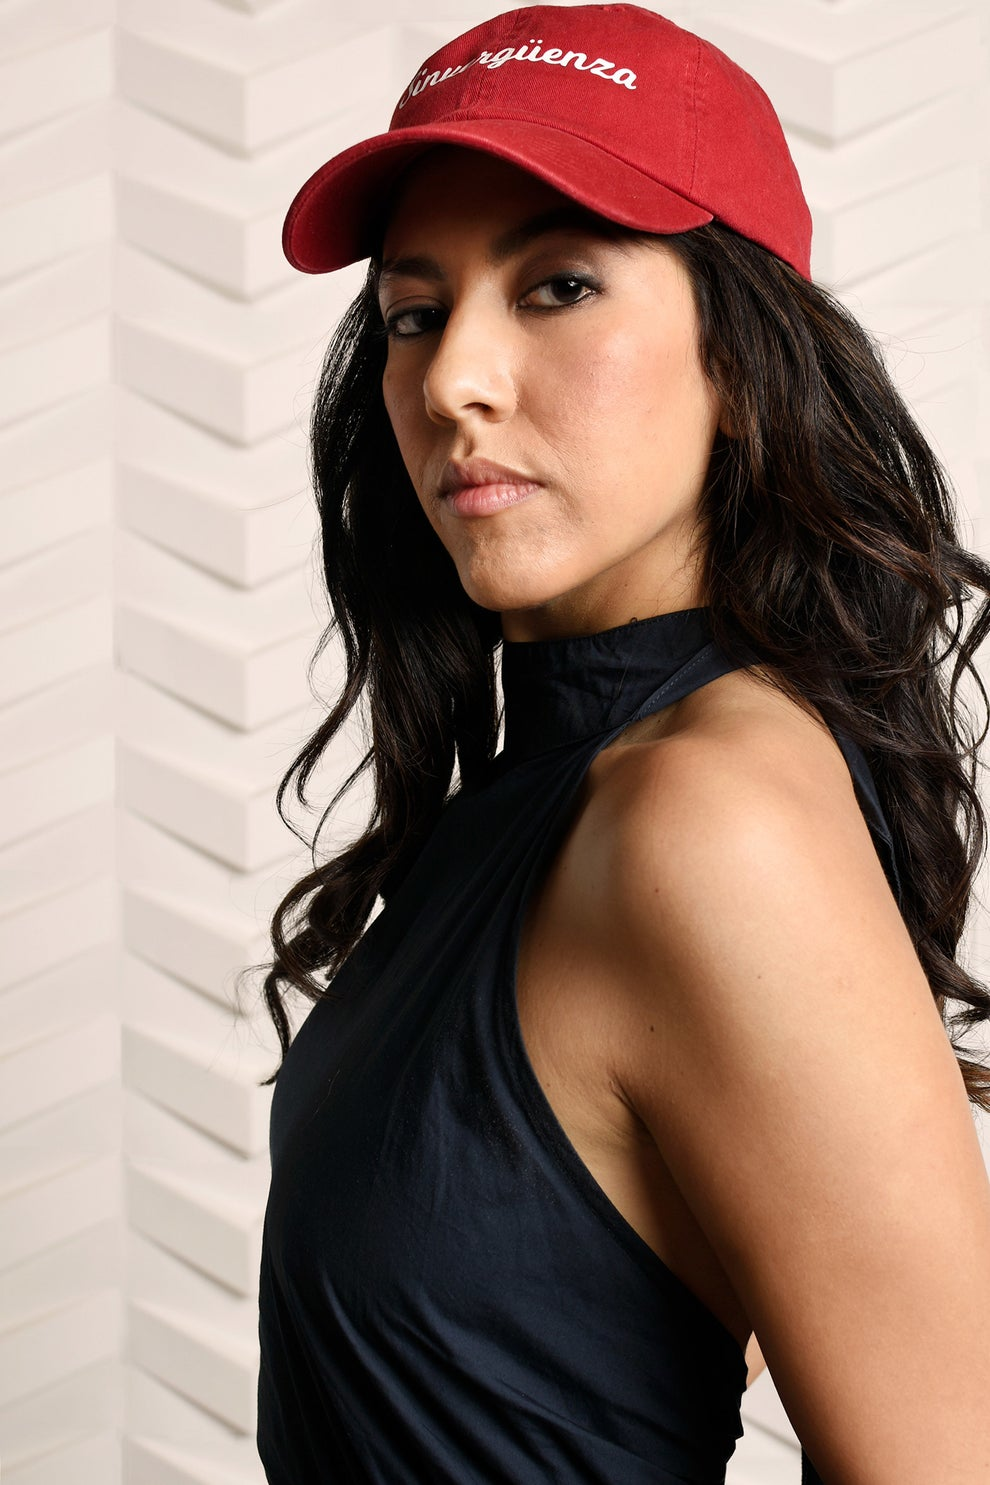 Light of the Moon star Stephanie Beatriz